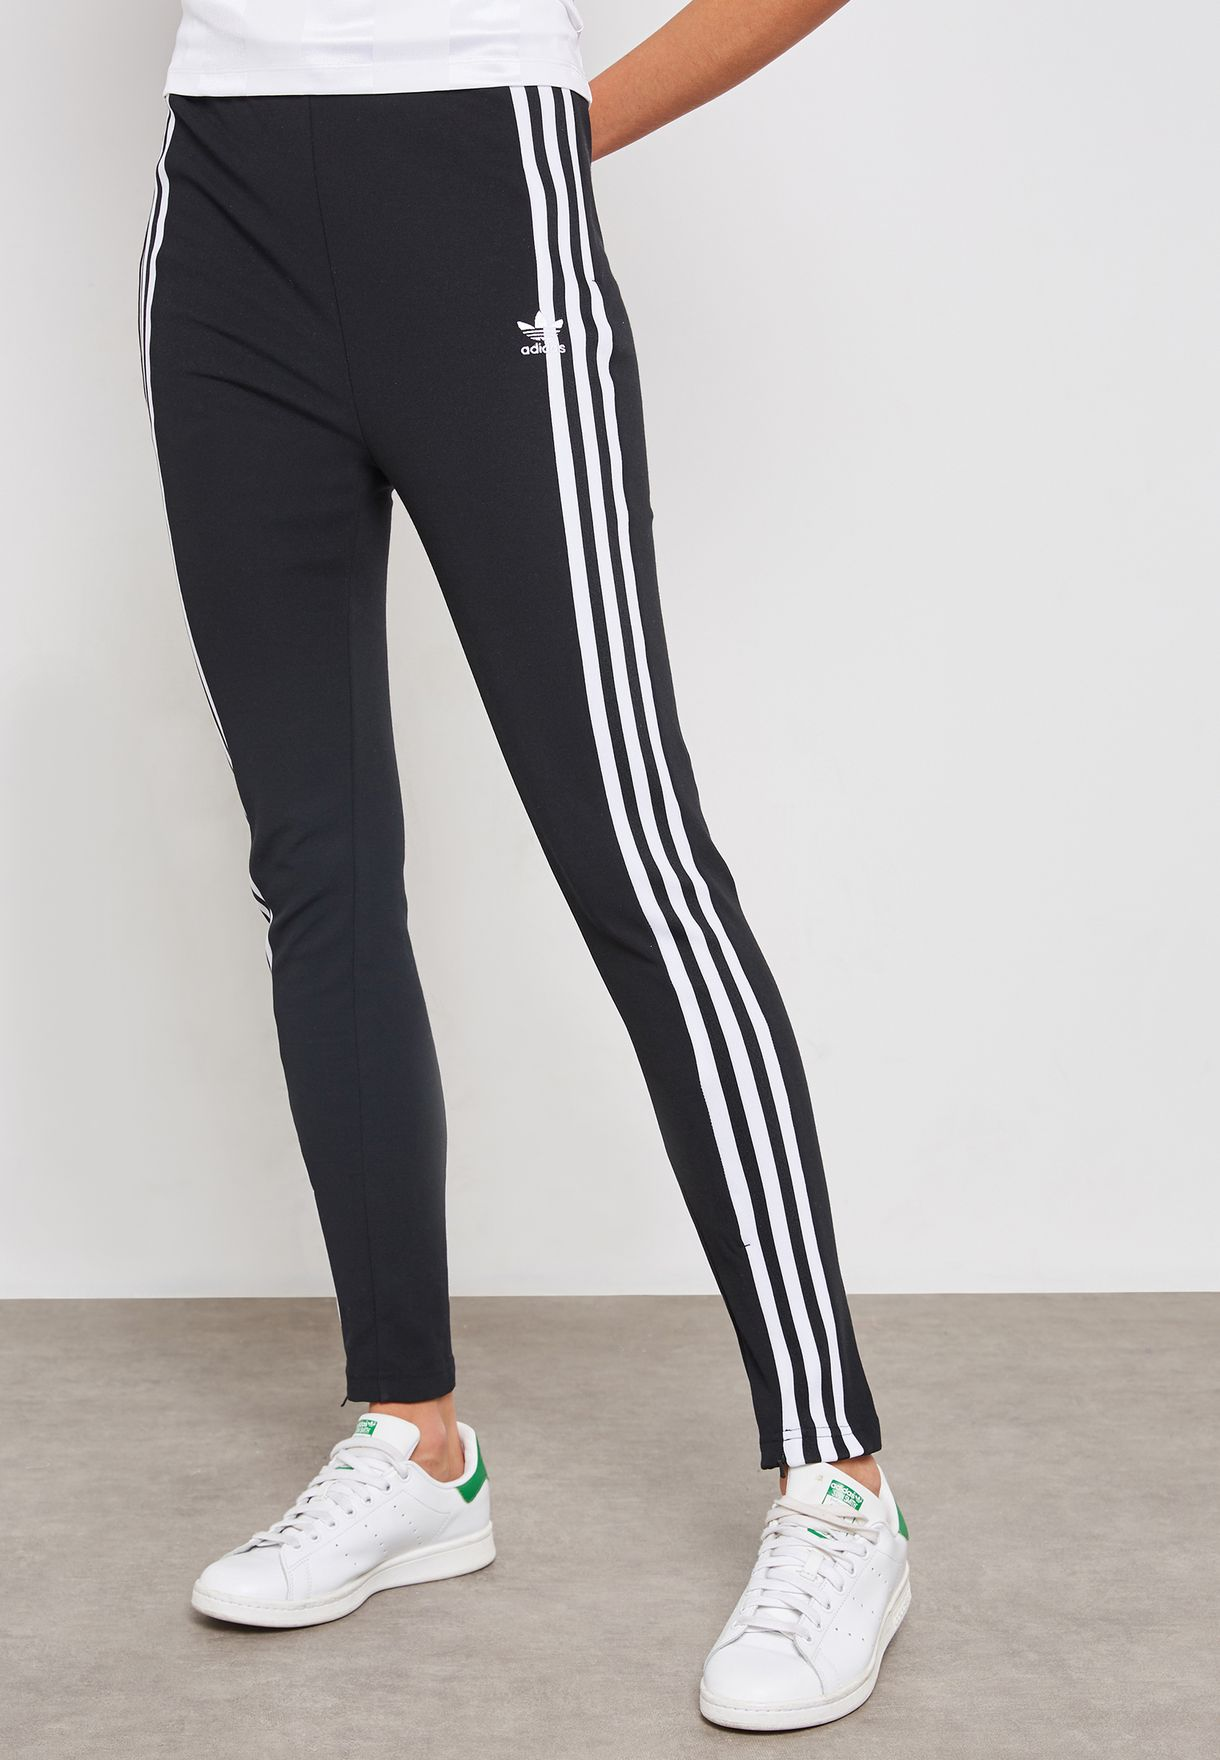 9153ca45b528 Shop adidas Originals black 3 Stripe Sweatpants DH2719 for Women in UAE -  AD478AT17KDU